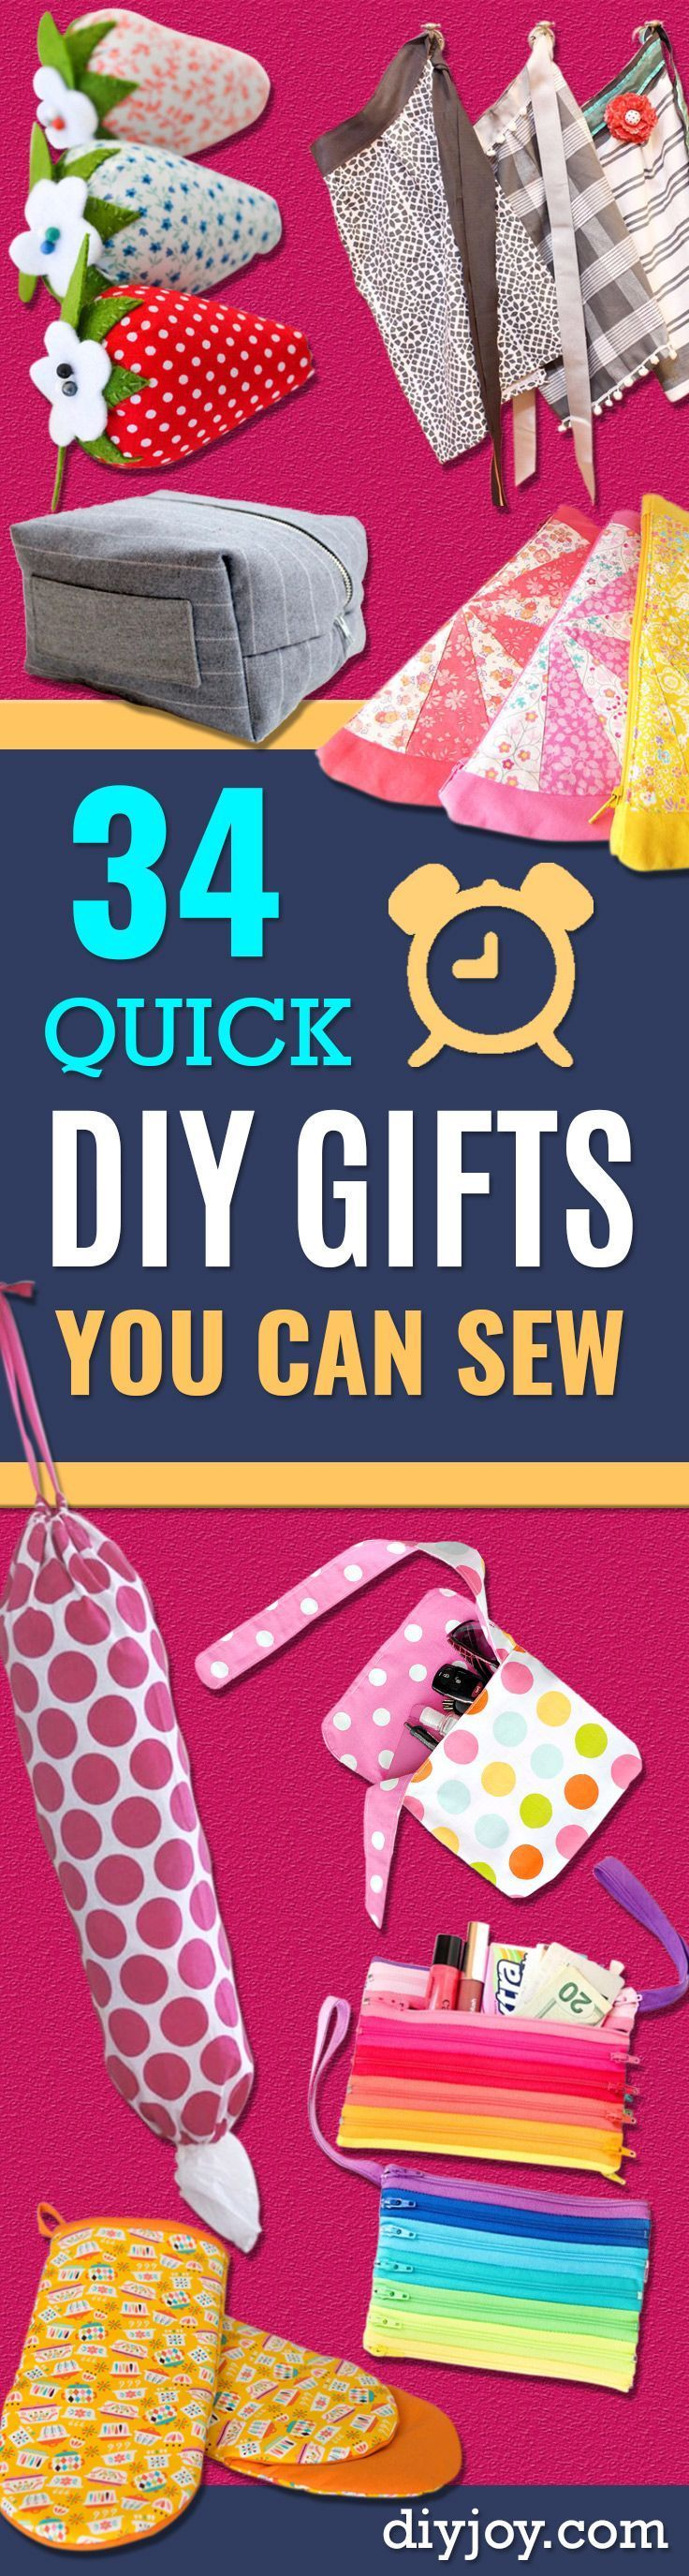 34 Quick DIY Gifts To Sew For Friends and Family Sewing